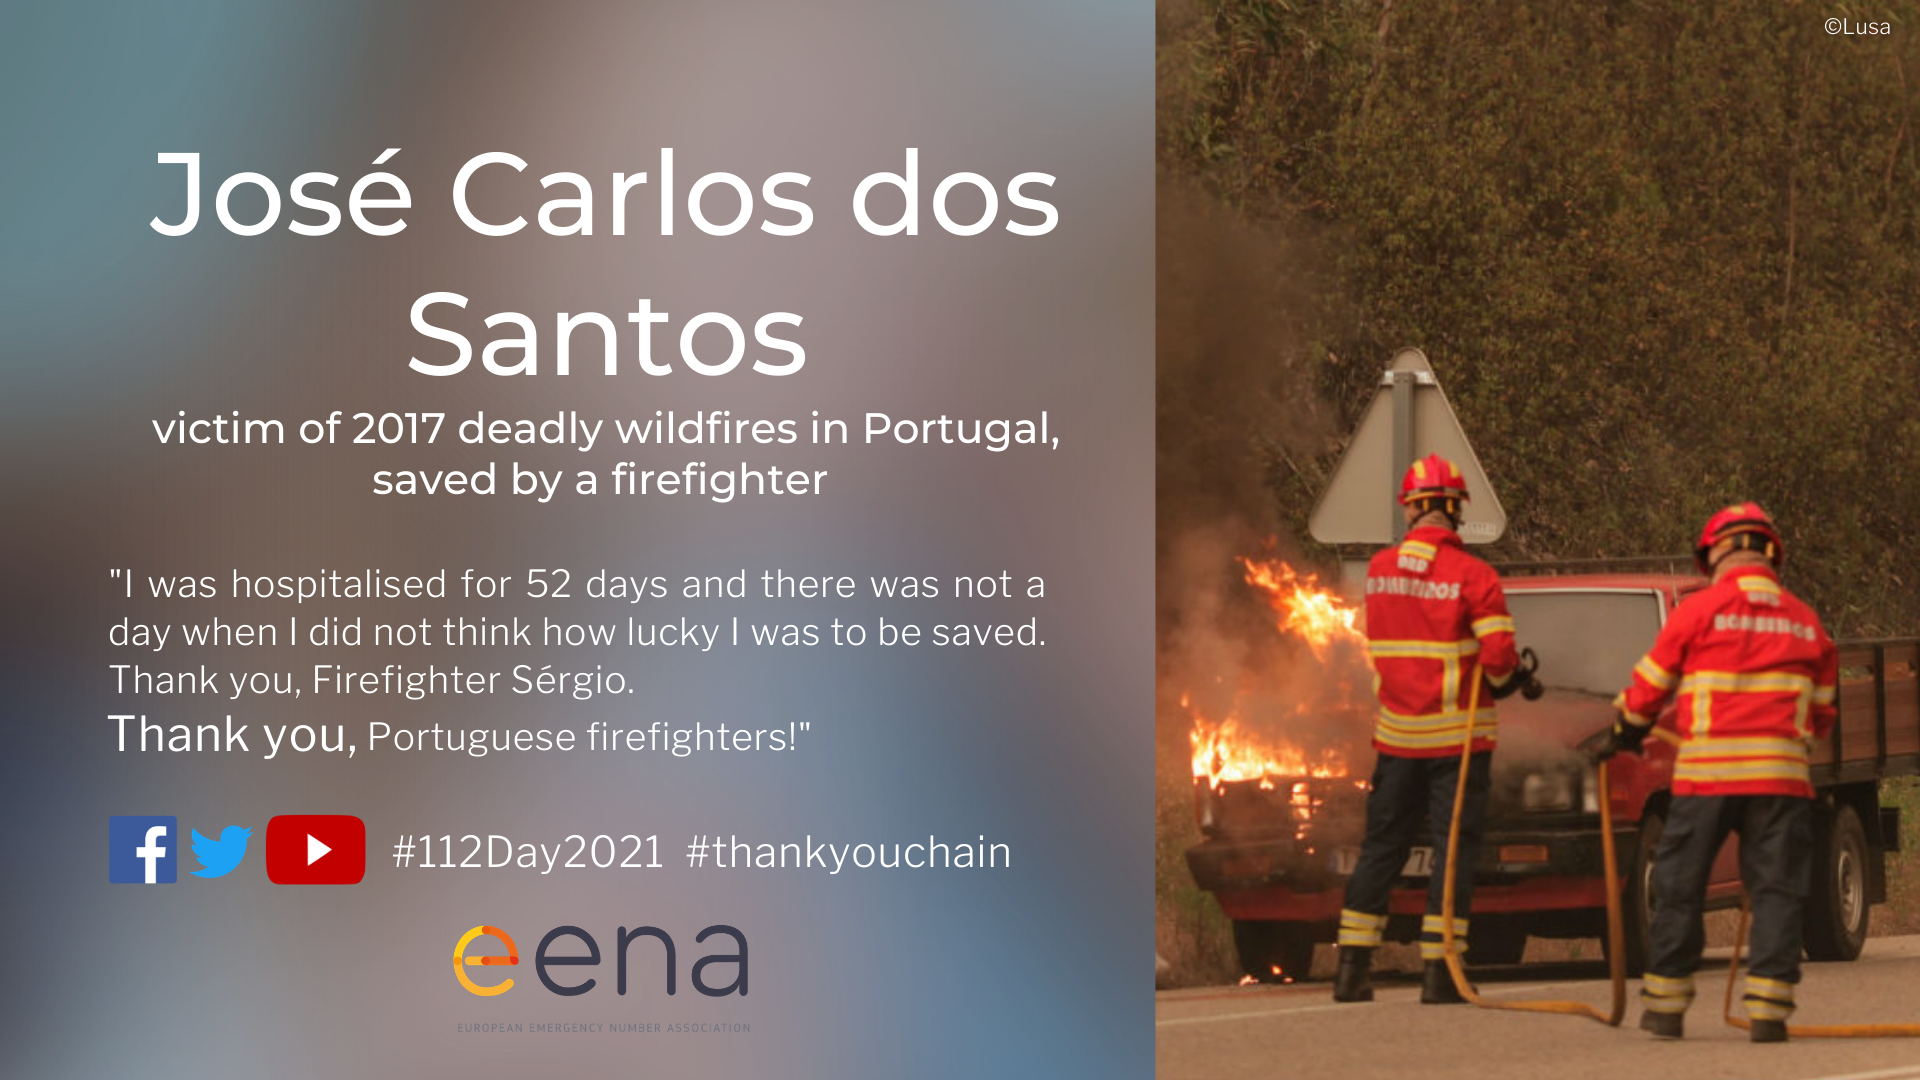 José Carlos dos Santos thanks the firefighter who saved his life